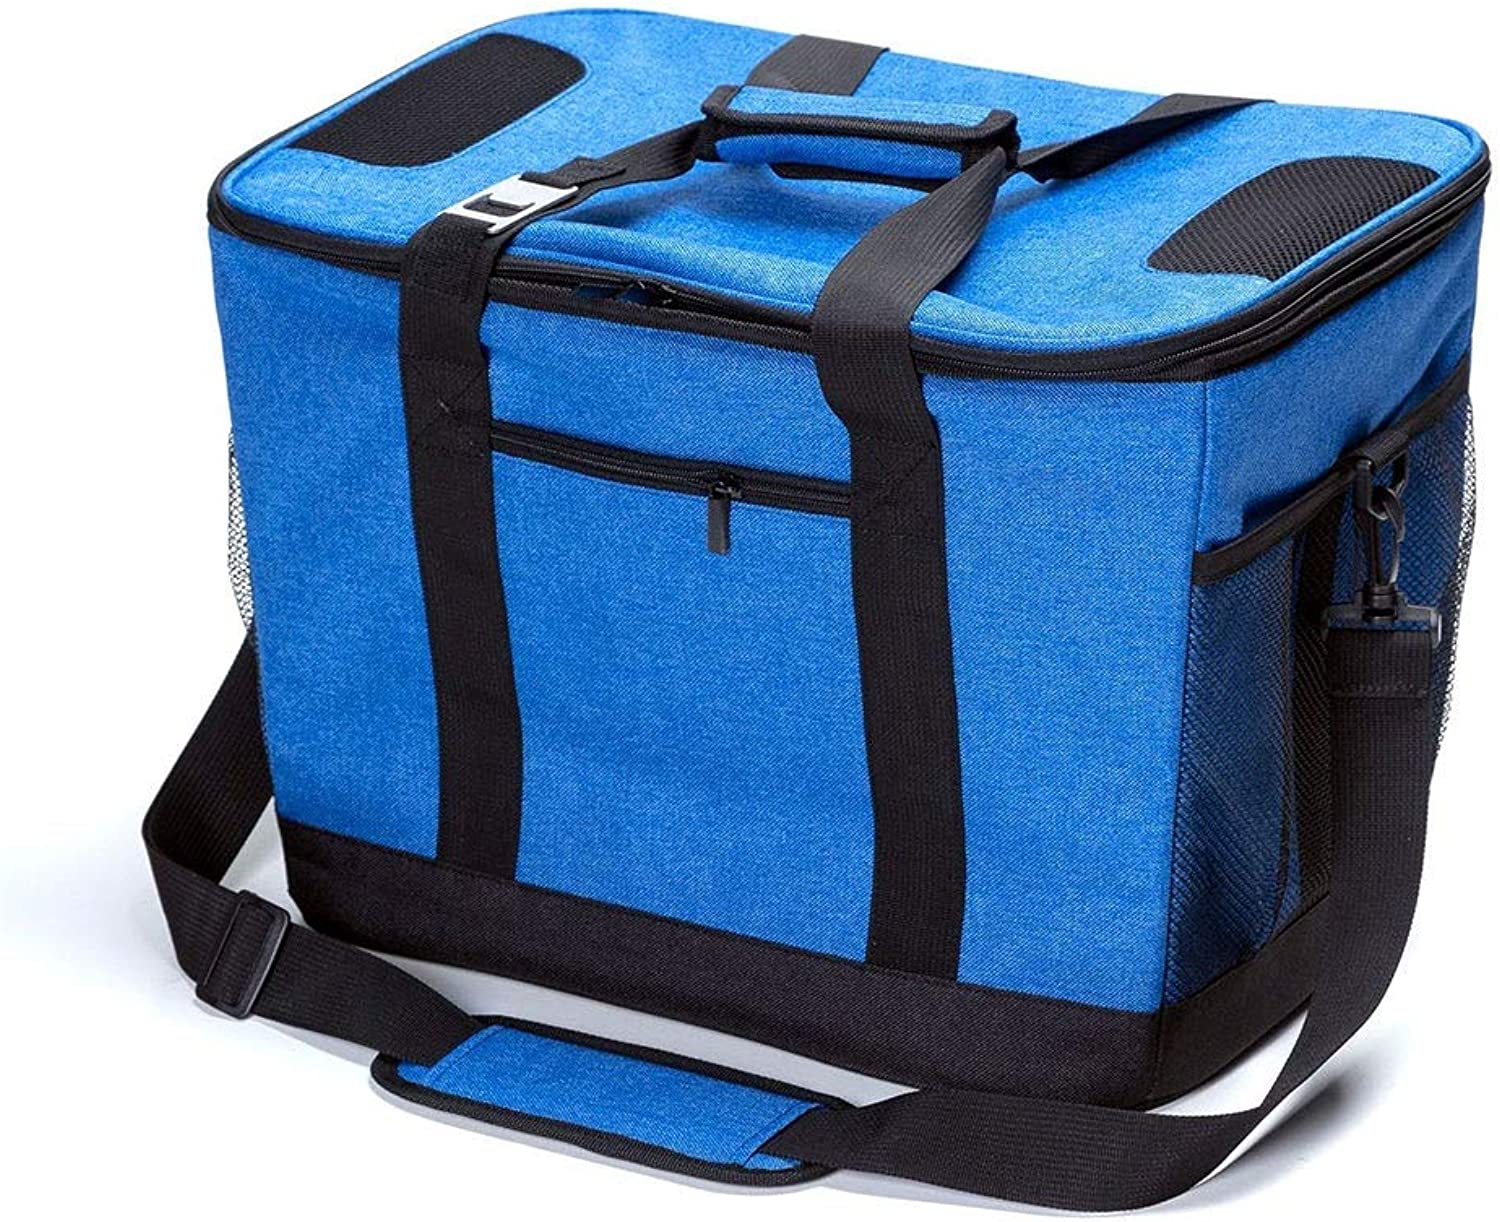 GJFeng Ice Pack Yang Off Linen Portable Insulated Lunch Box Ice Pack Takeaway Food Delivery Fresh Package Portable Wear Waterproof Bag (color   blueee, Size   45  30  32CM)